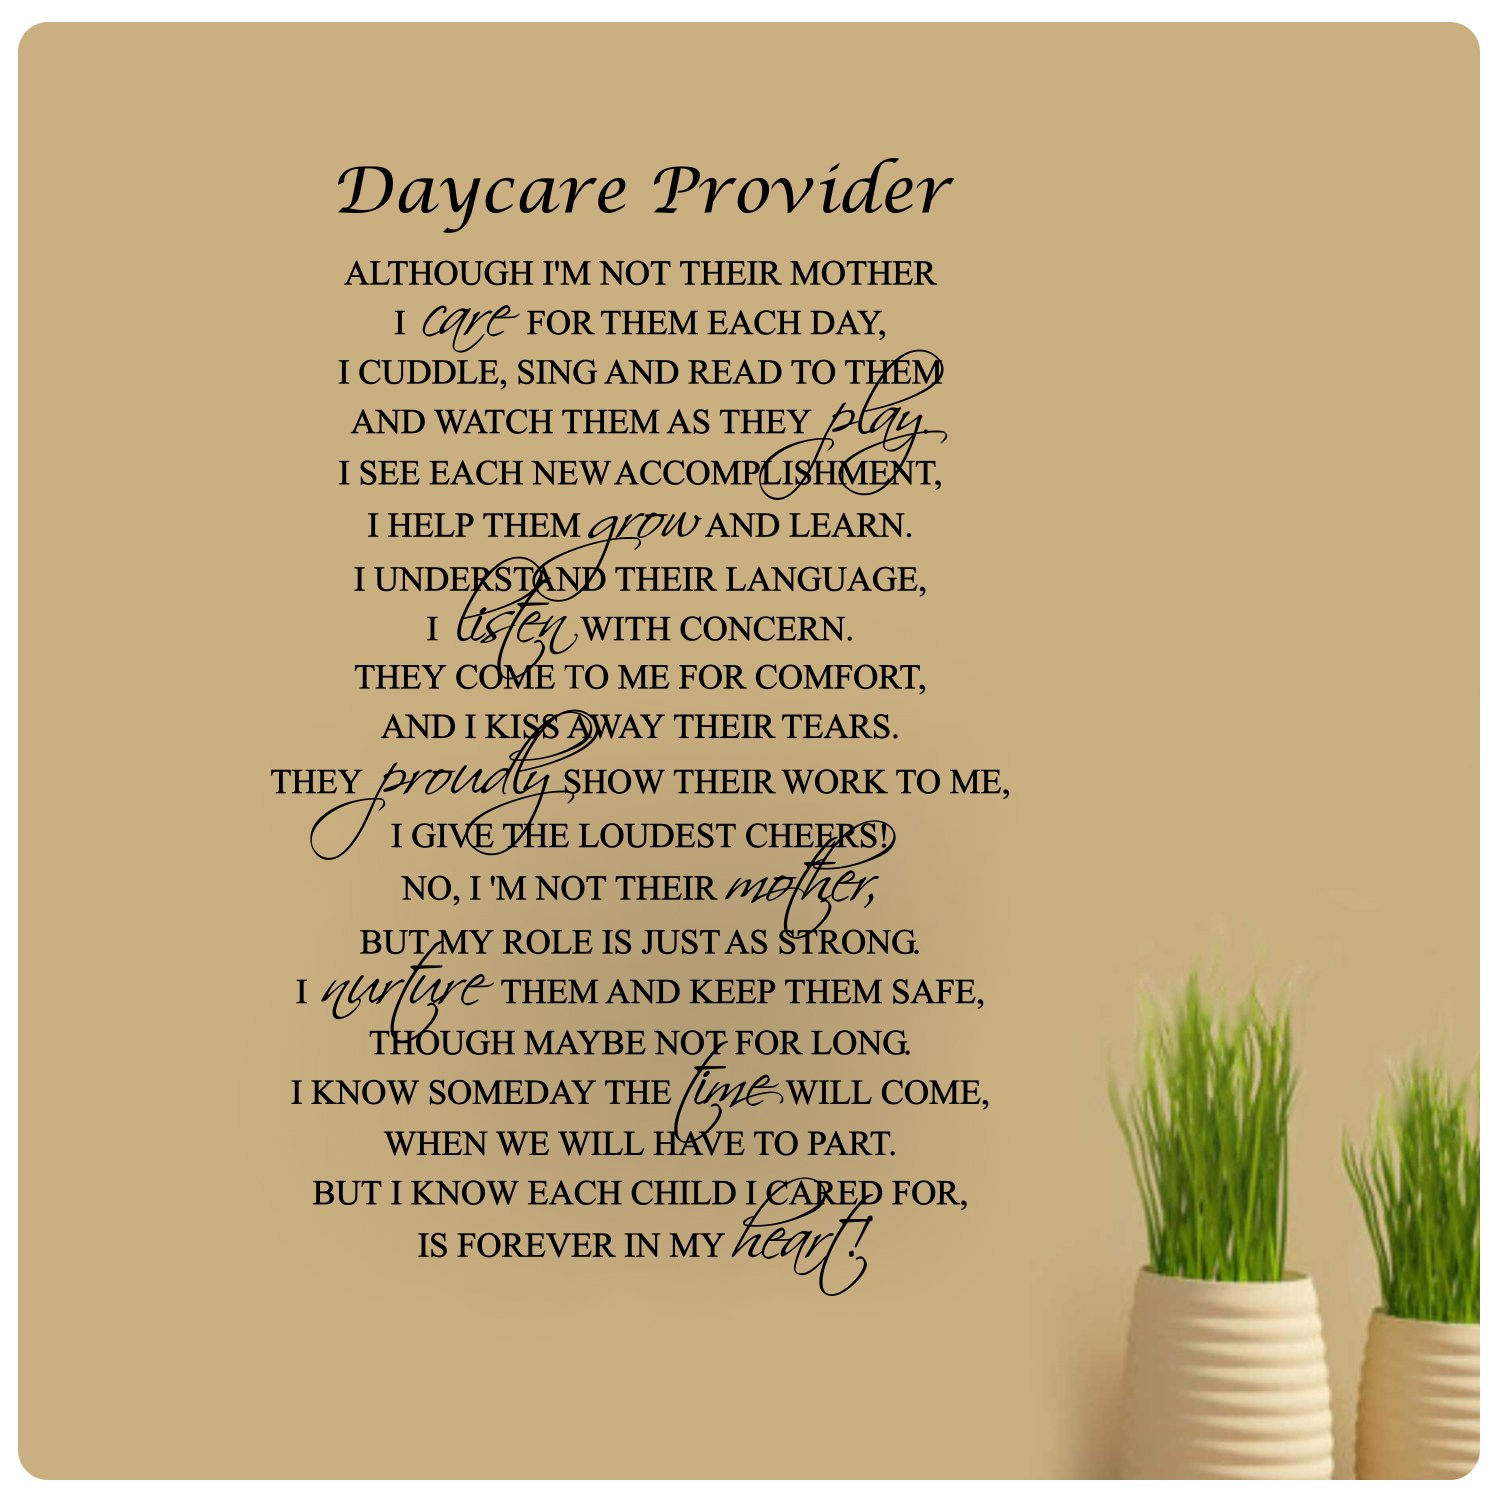 36'' x 24'' Daycare Provider Poem Although I Am Not Their Mother I Care For Them Every Day Wall Decal Sticker Art Mural Home Décor Quote